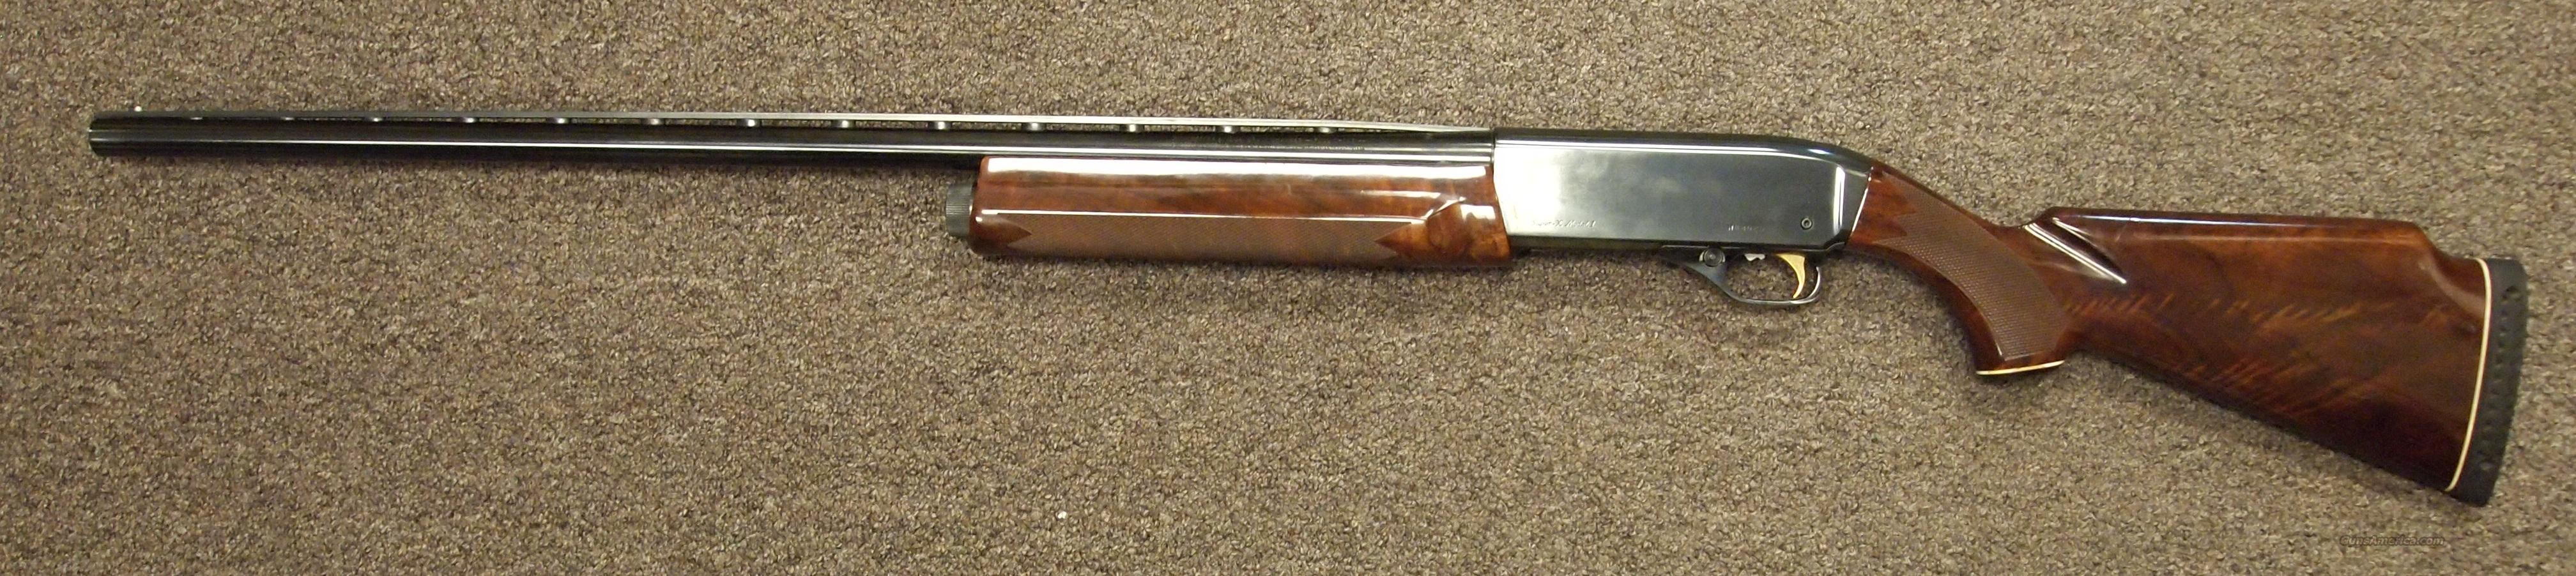 Winchester super x model 1 trap 12ga for sale - Moderne trapmodel ...